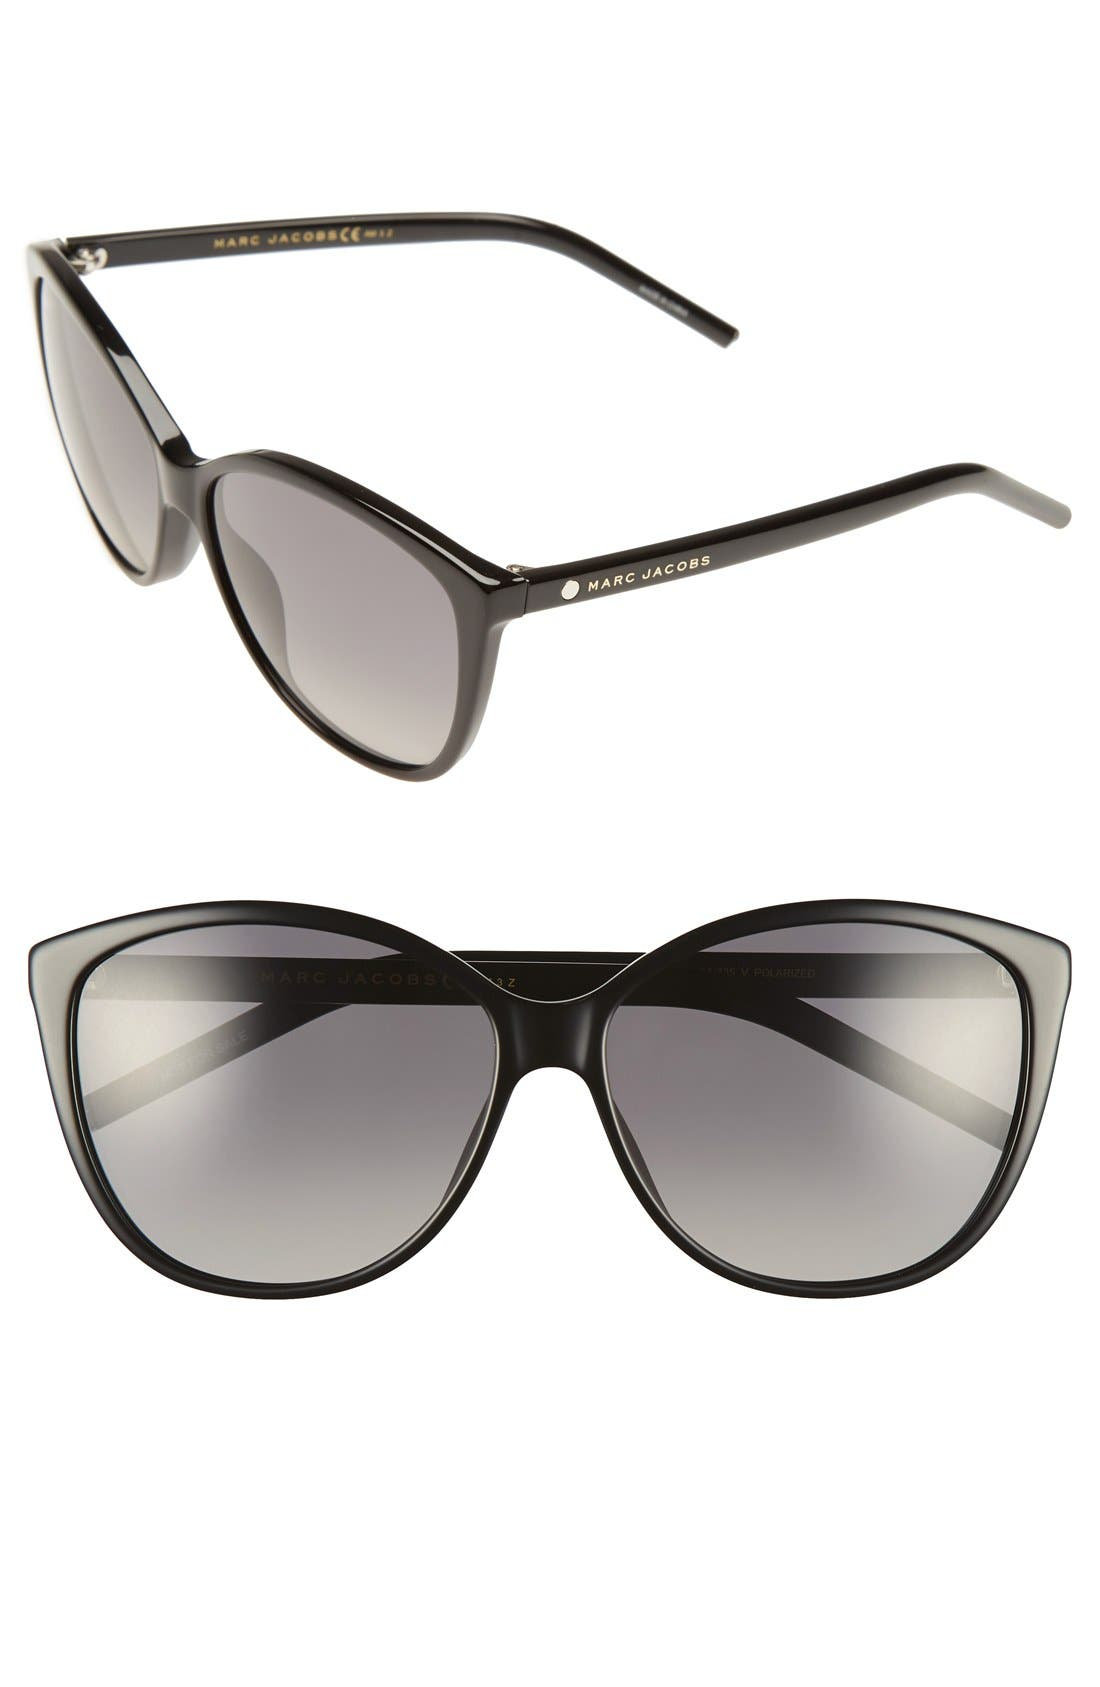 Alternate Image 1 Selected - MARC JACOBS 58mm Polarized Butterfly Sunglasses